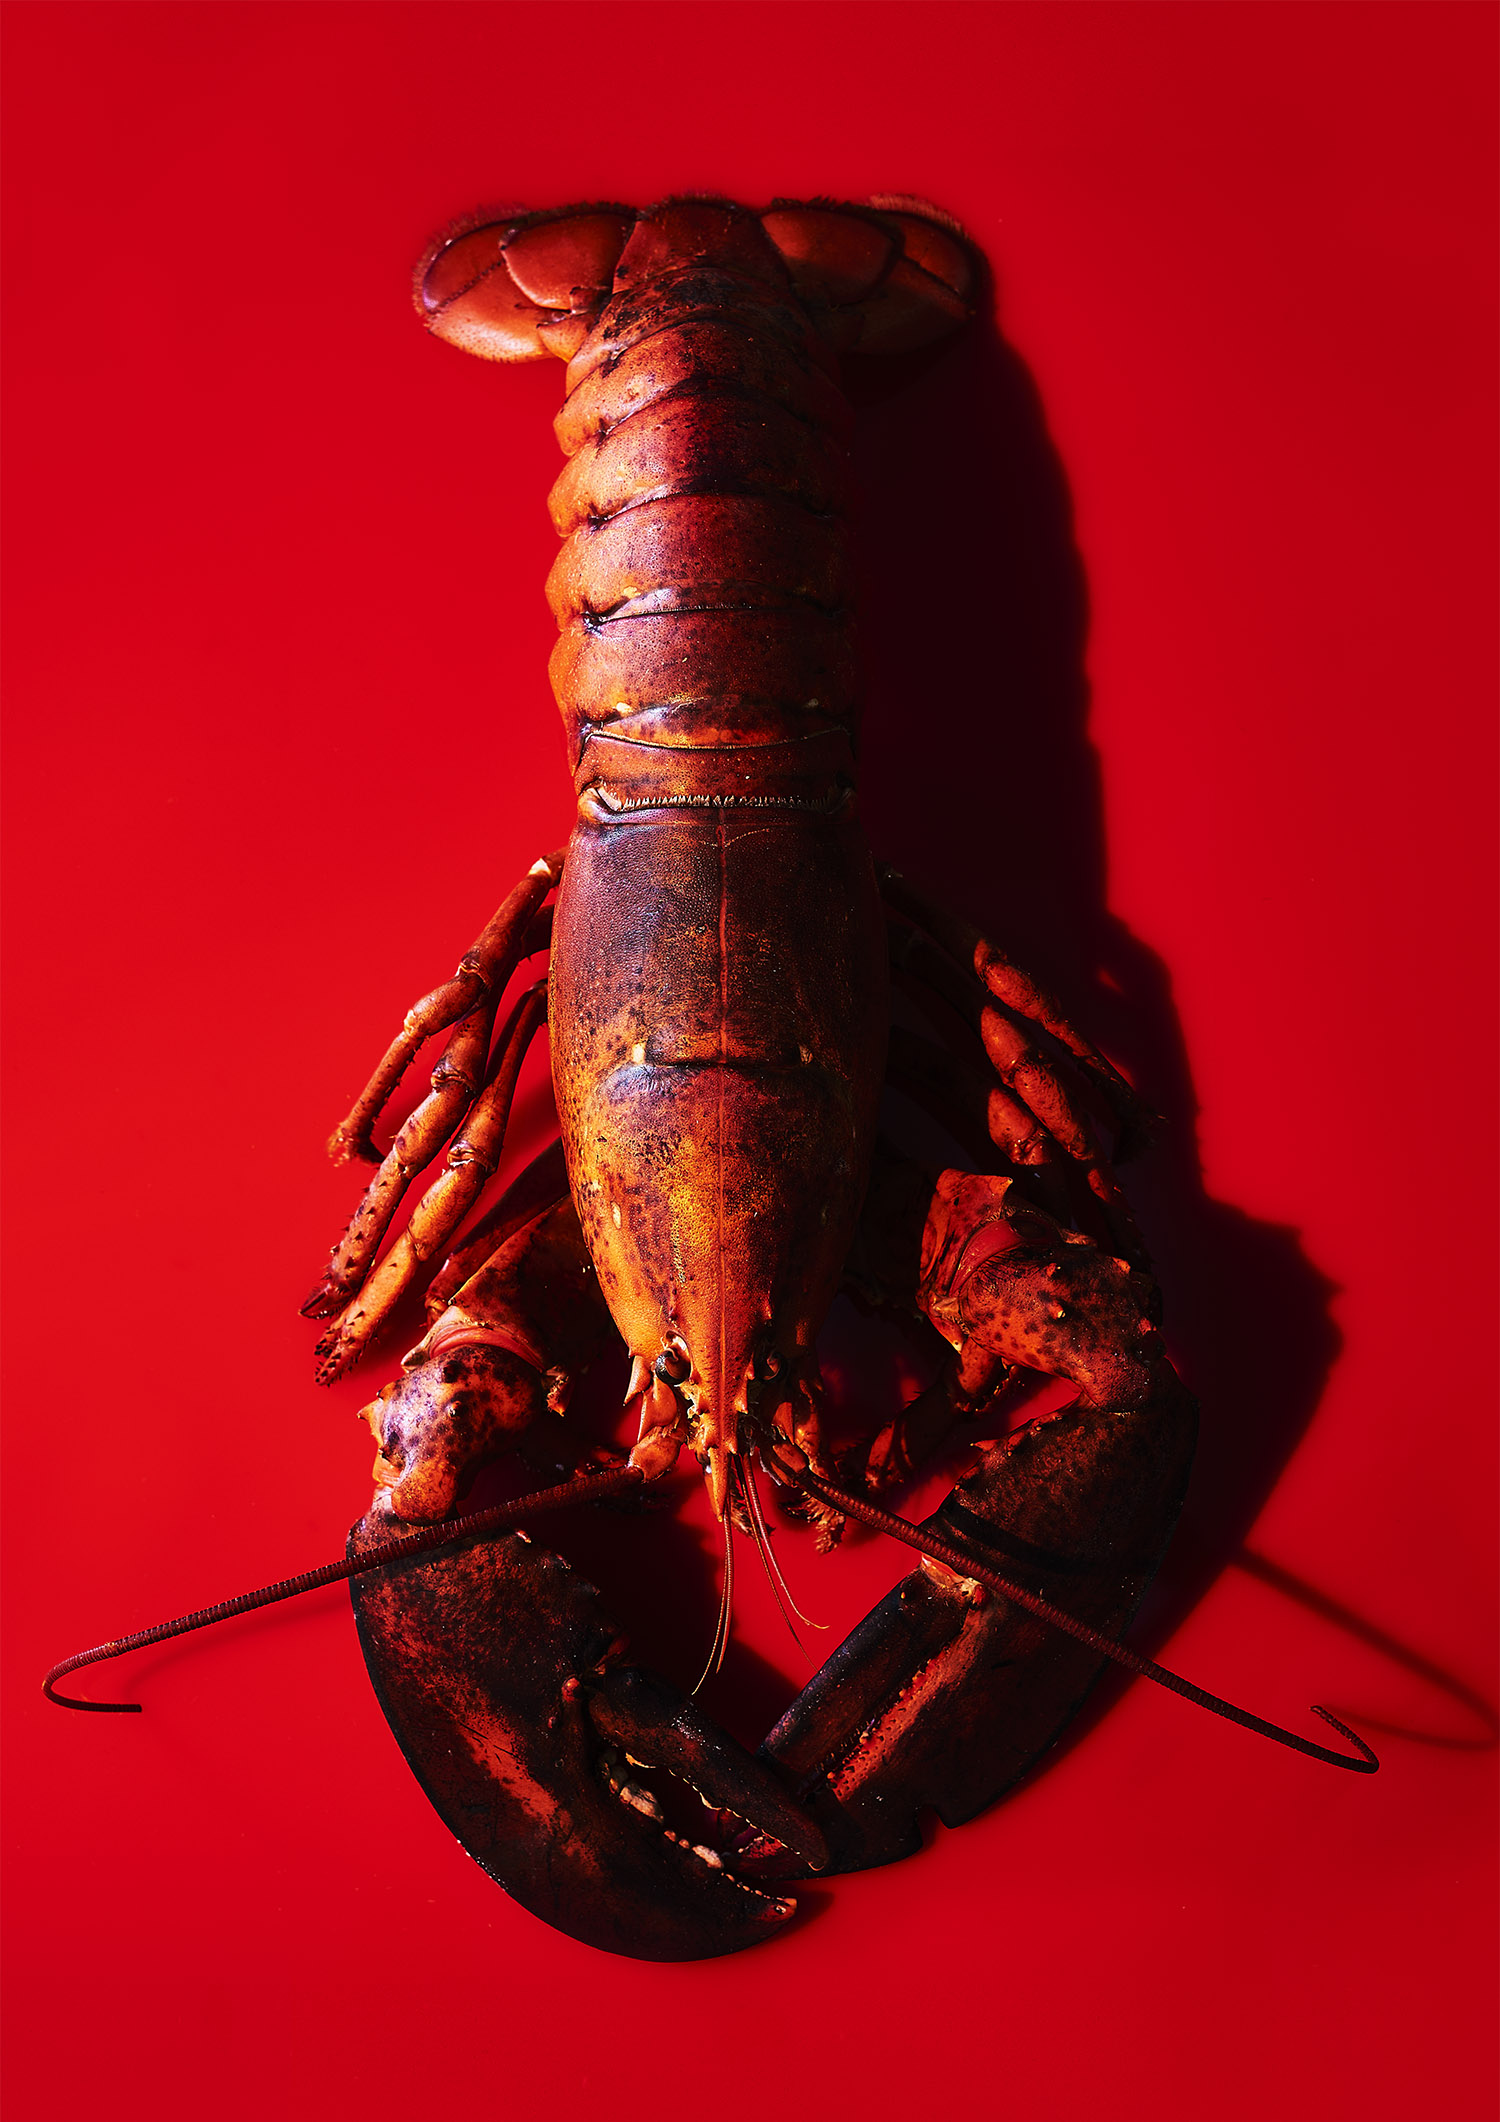 Lobster_A3 copy.jpg